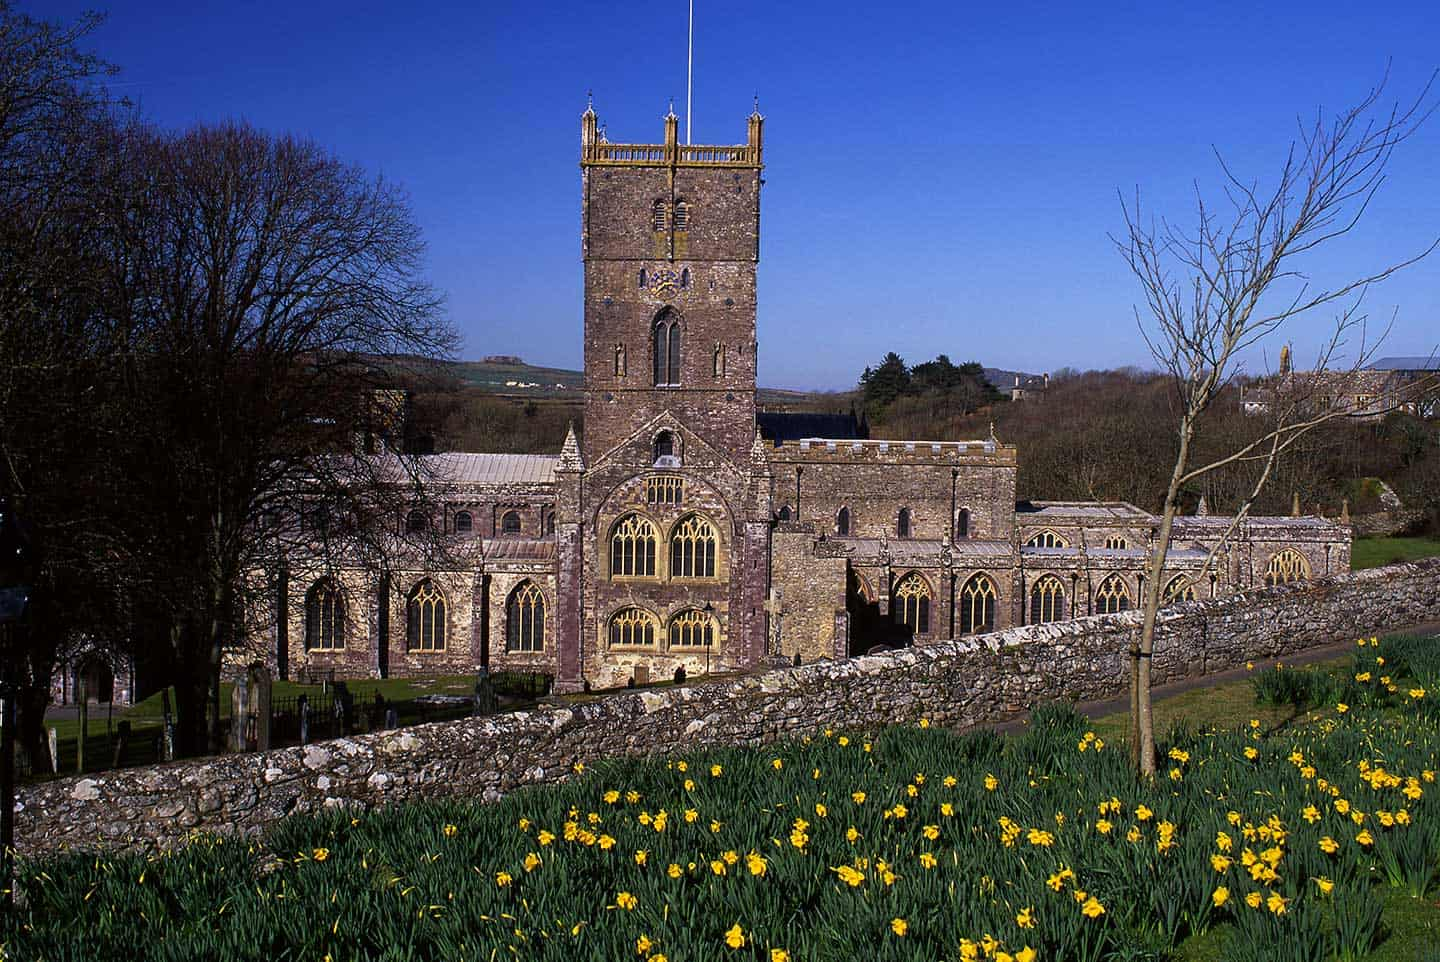 Image of St David's Cathedral in Wales in spring